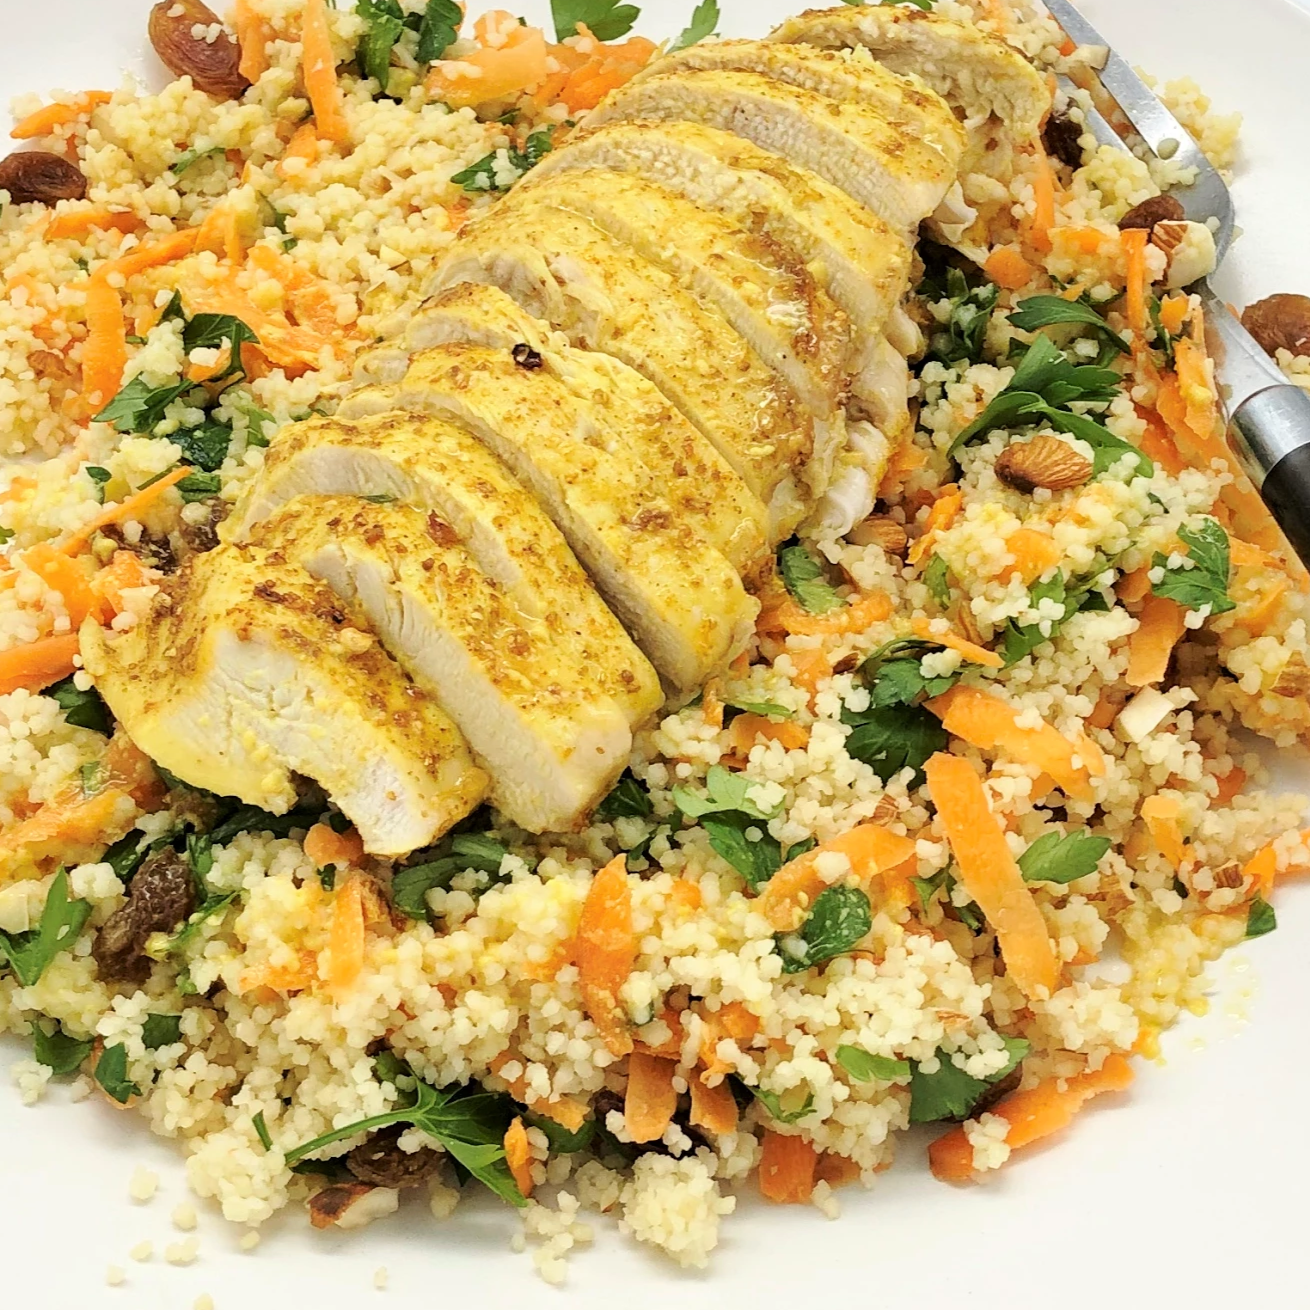 Familychef 25' Moroccan Chicken With Couscous & Carrot Salad plate